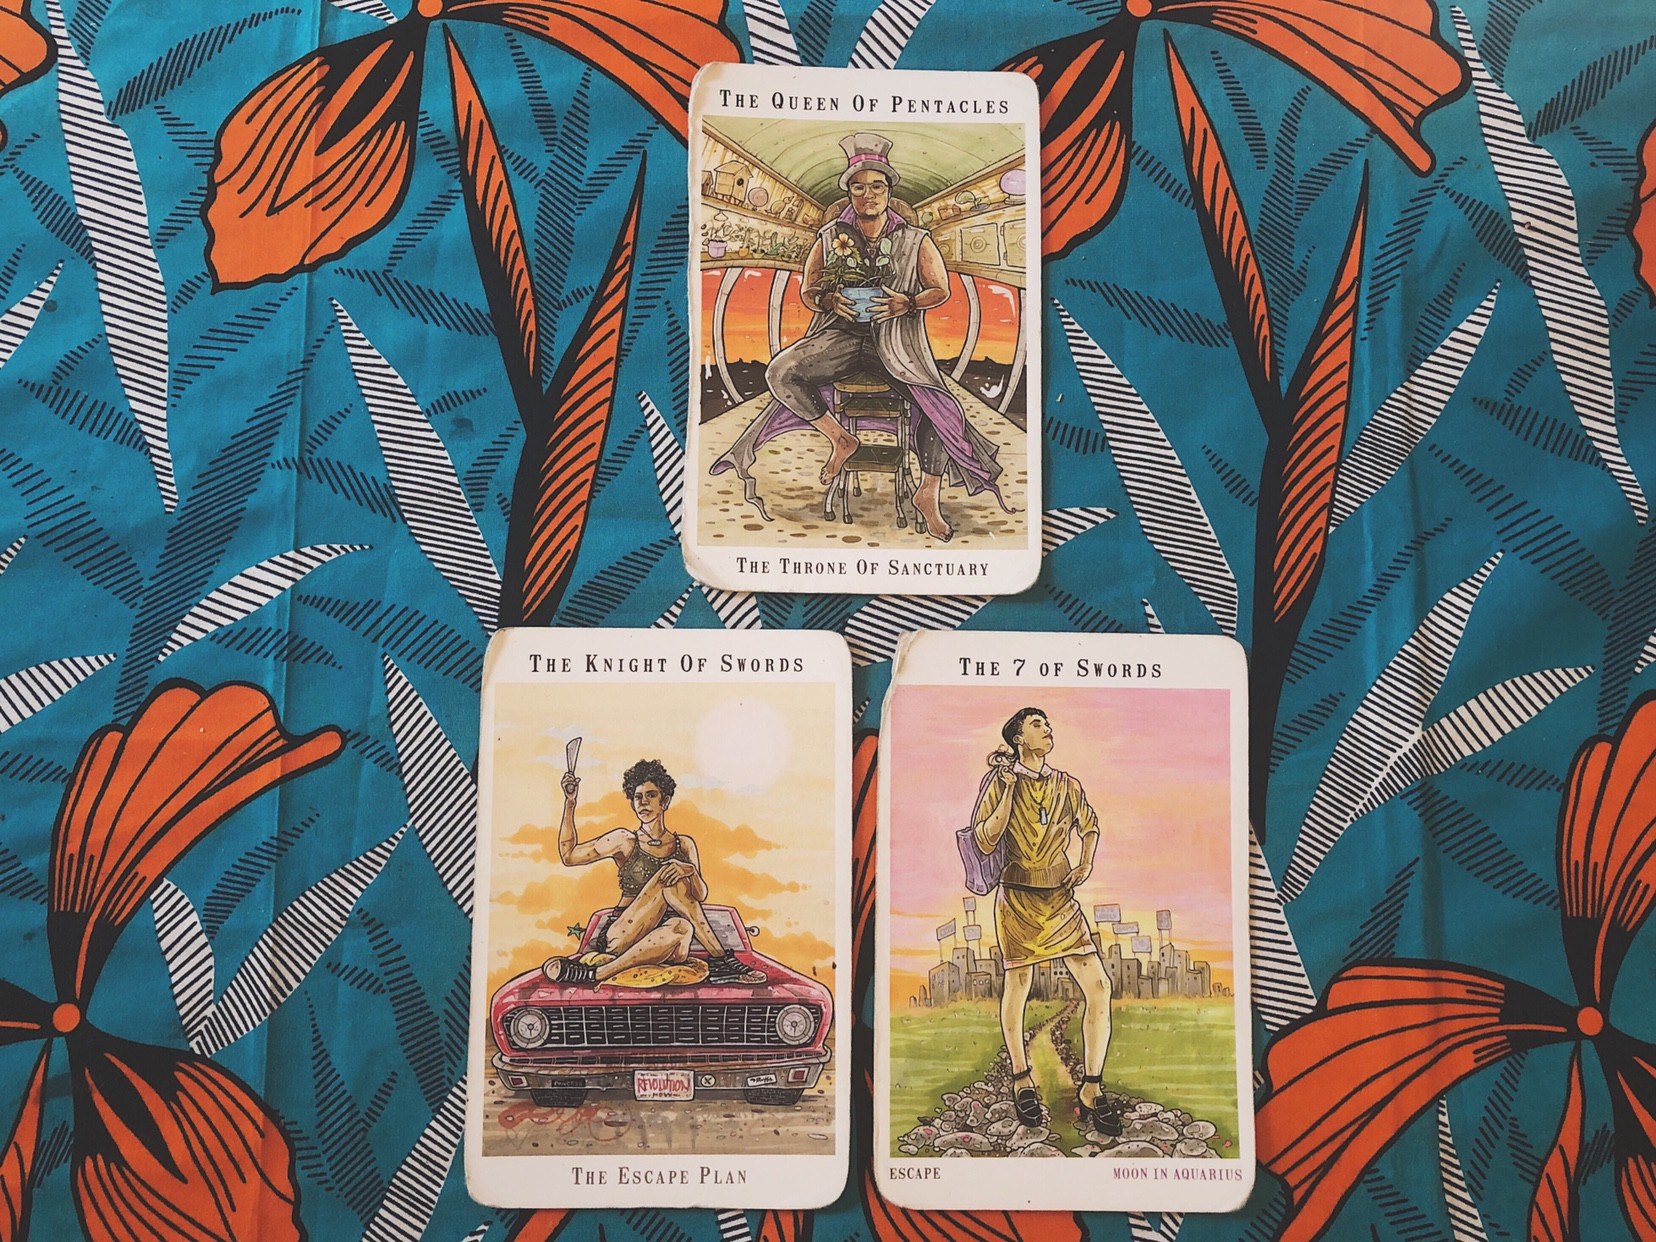 Tarotscopes For The New Moon In Libra By Dominique Matti Human Parts The 6 of swords indicates that you can learn from challenges and take that knowledge forward for a smoother or easier experience. tarotscopes for the new moon in libra